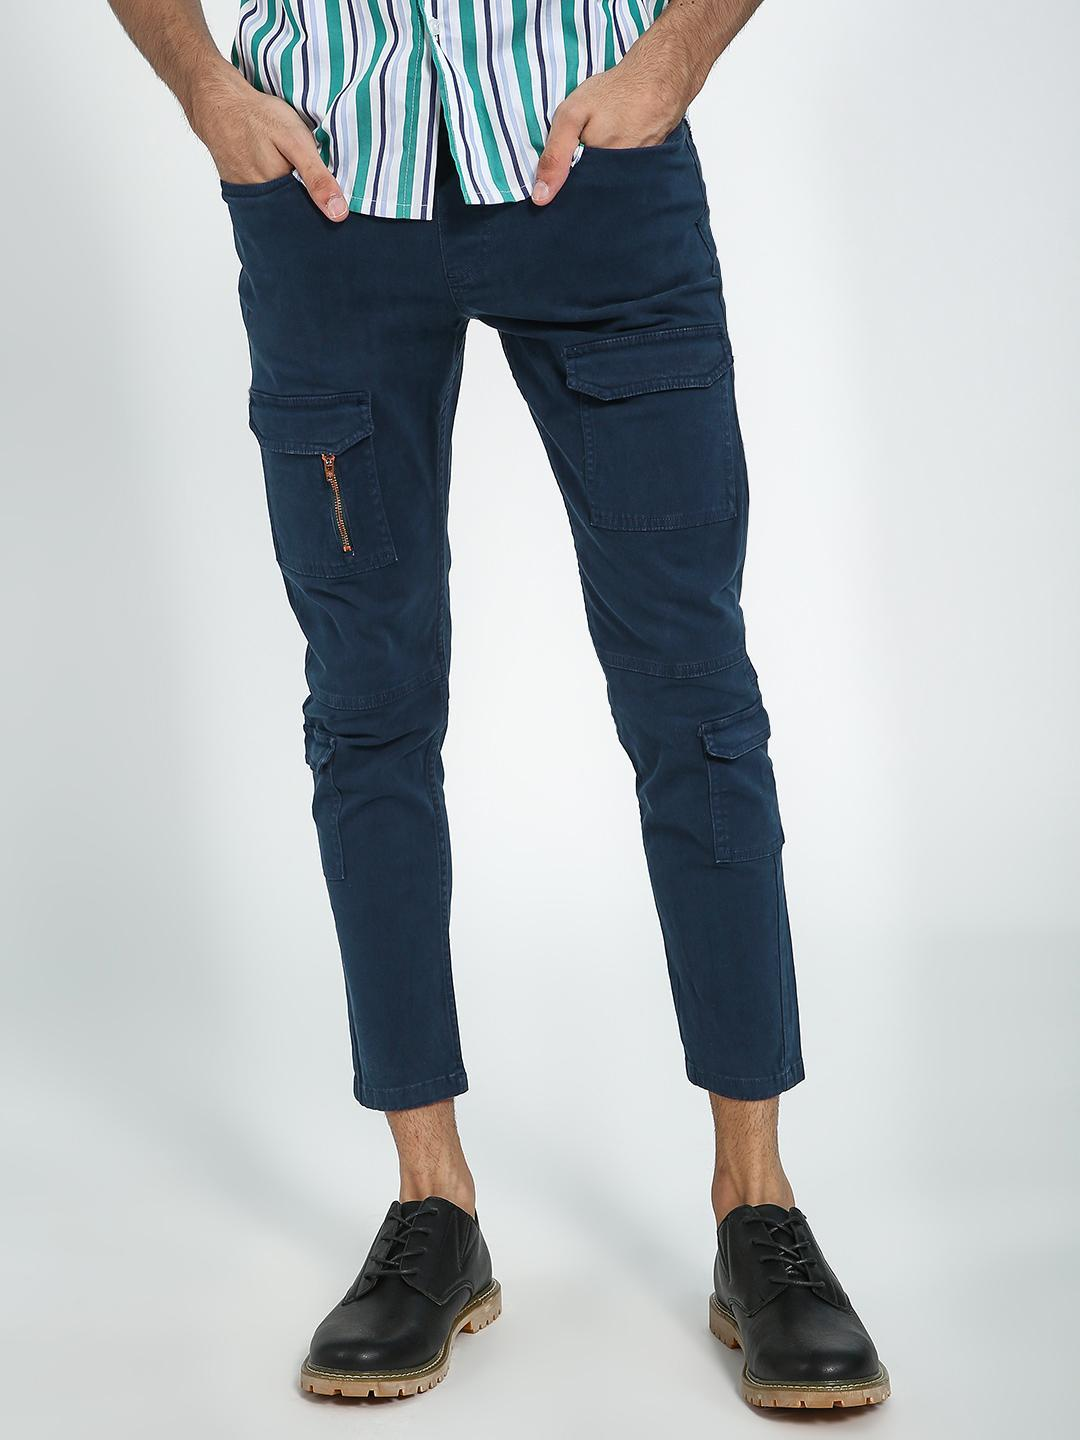 Blue Saint Navy Multi Utility Pocket Trousers 1